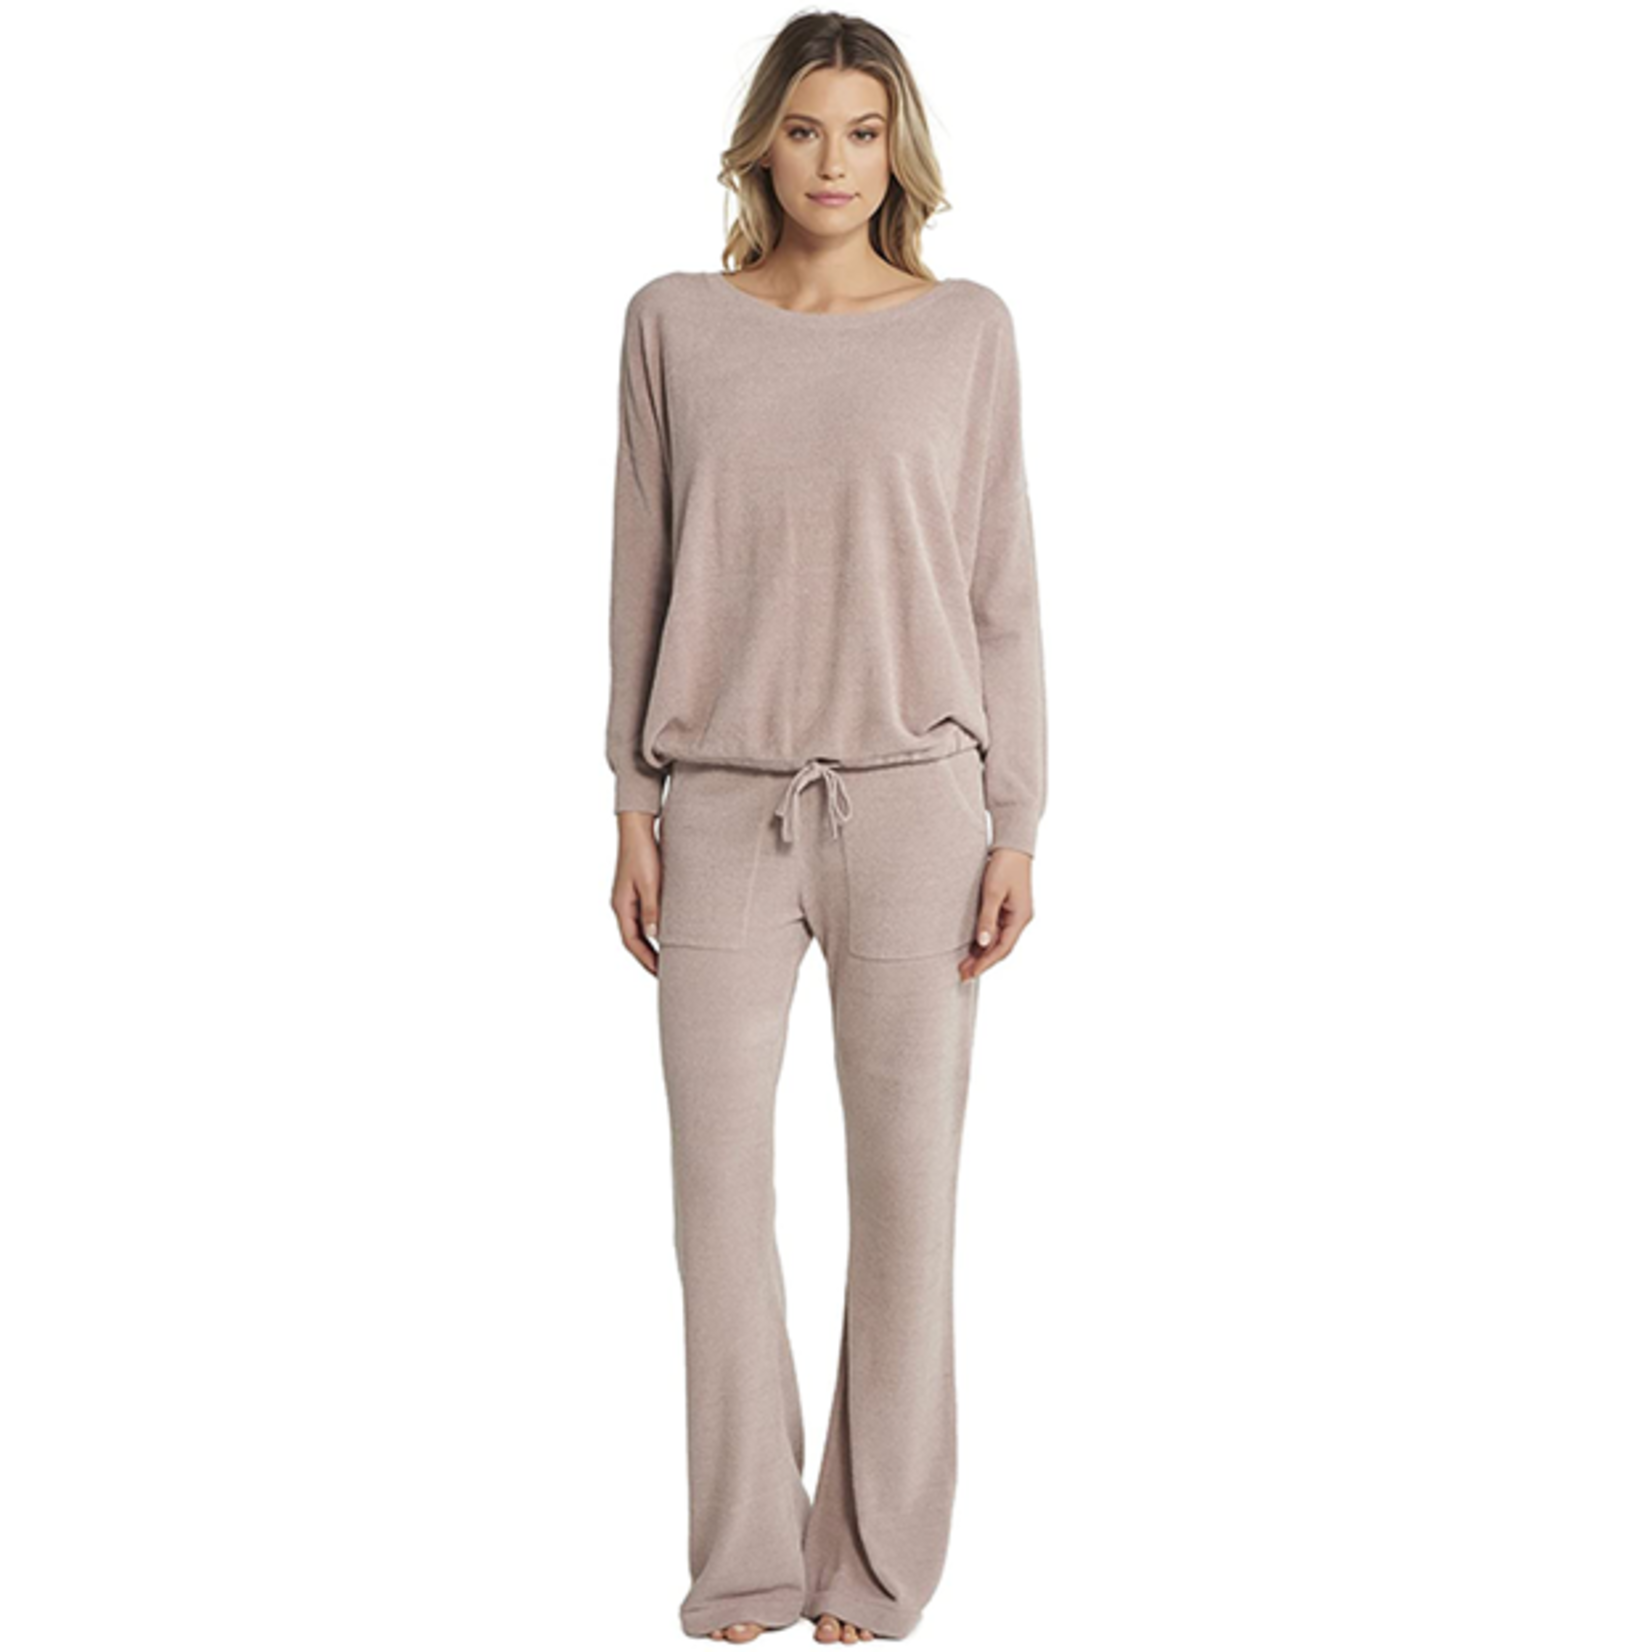 Barefoot Dreams Cozy Chic Ultra Lite Slouchy Pullover - Beach Rock